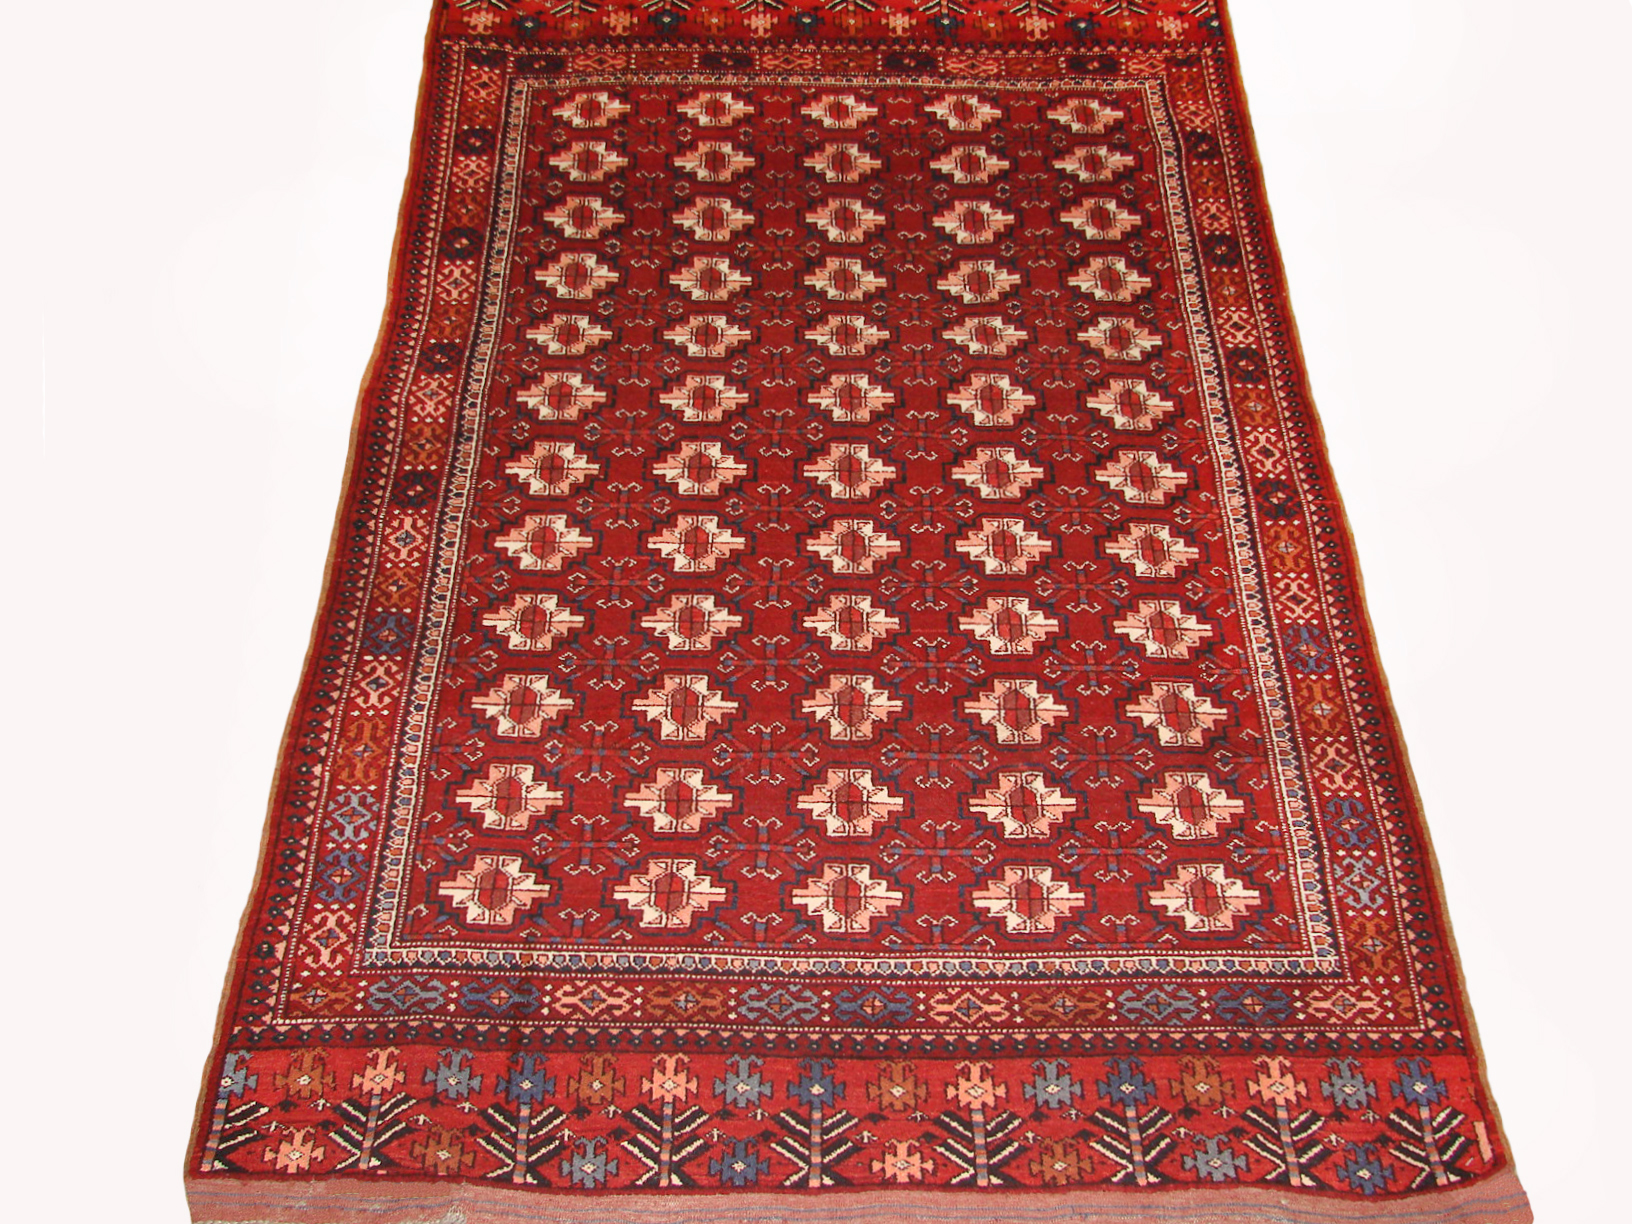 4x6 Bokhara Hand Knotted Wool Area Rug - MR19446